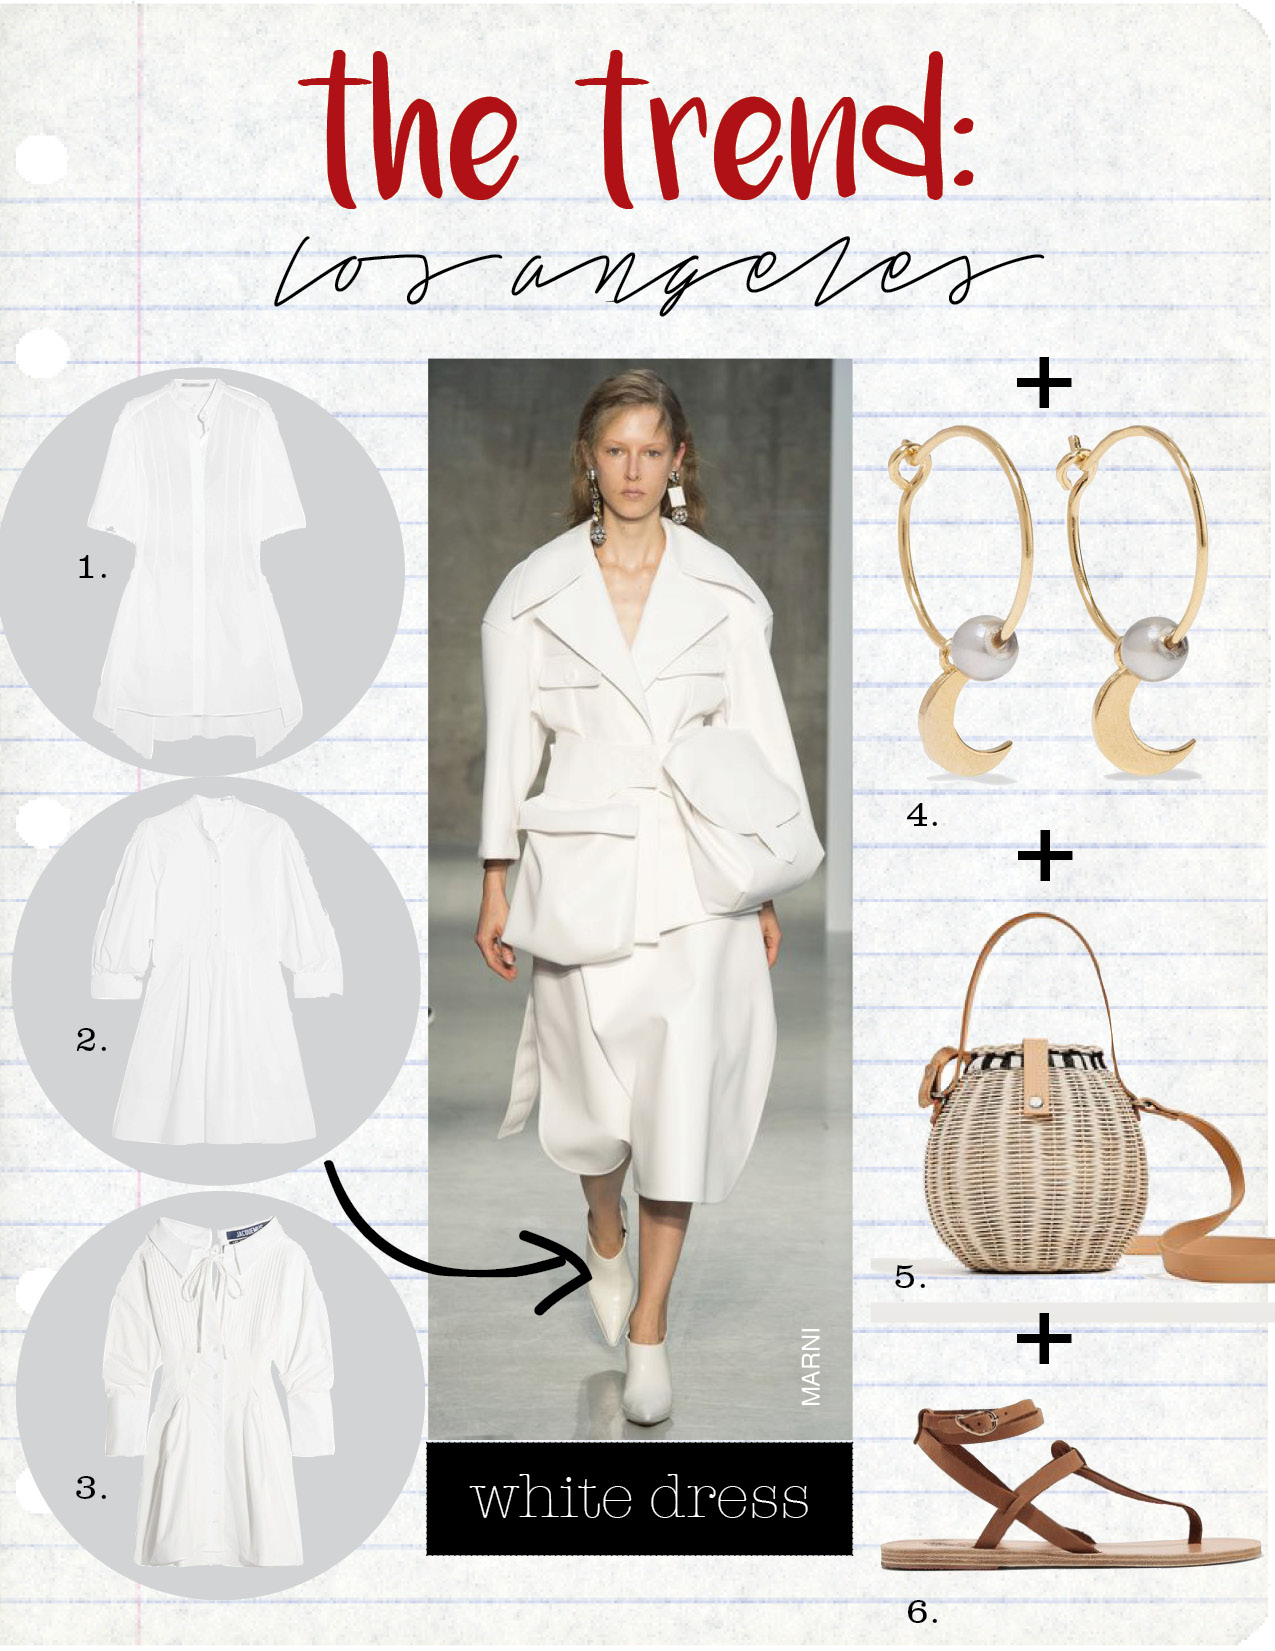 1. stella maccartney cotton-poploin dress, $765,  net-a-porter.com  2. chloe pleated cotton-poplin dress, $1495,  net-a-porter.com  3. jacquemus pintucked cotton mini dress, $525,  net-a-porter.com  4. iam by ileana makri satelite moon gold-plated pearl earrings, $270,  net-a-porter.com  5. zara raffia bucket bag, $59,  zara.com  6. ancient greek sandals estia leather sandals, $225,  net-a-porter.com